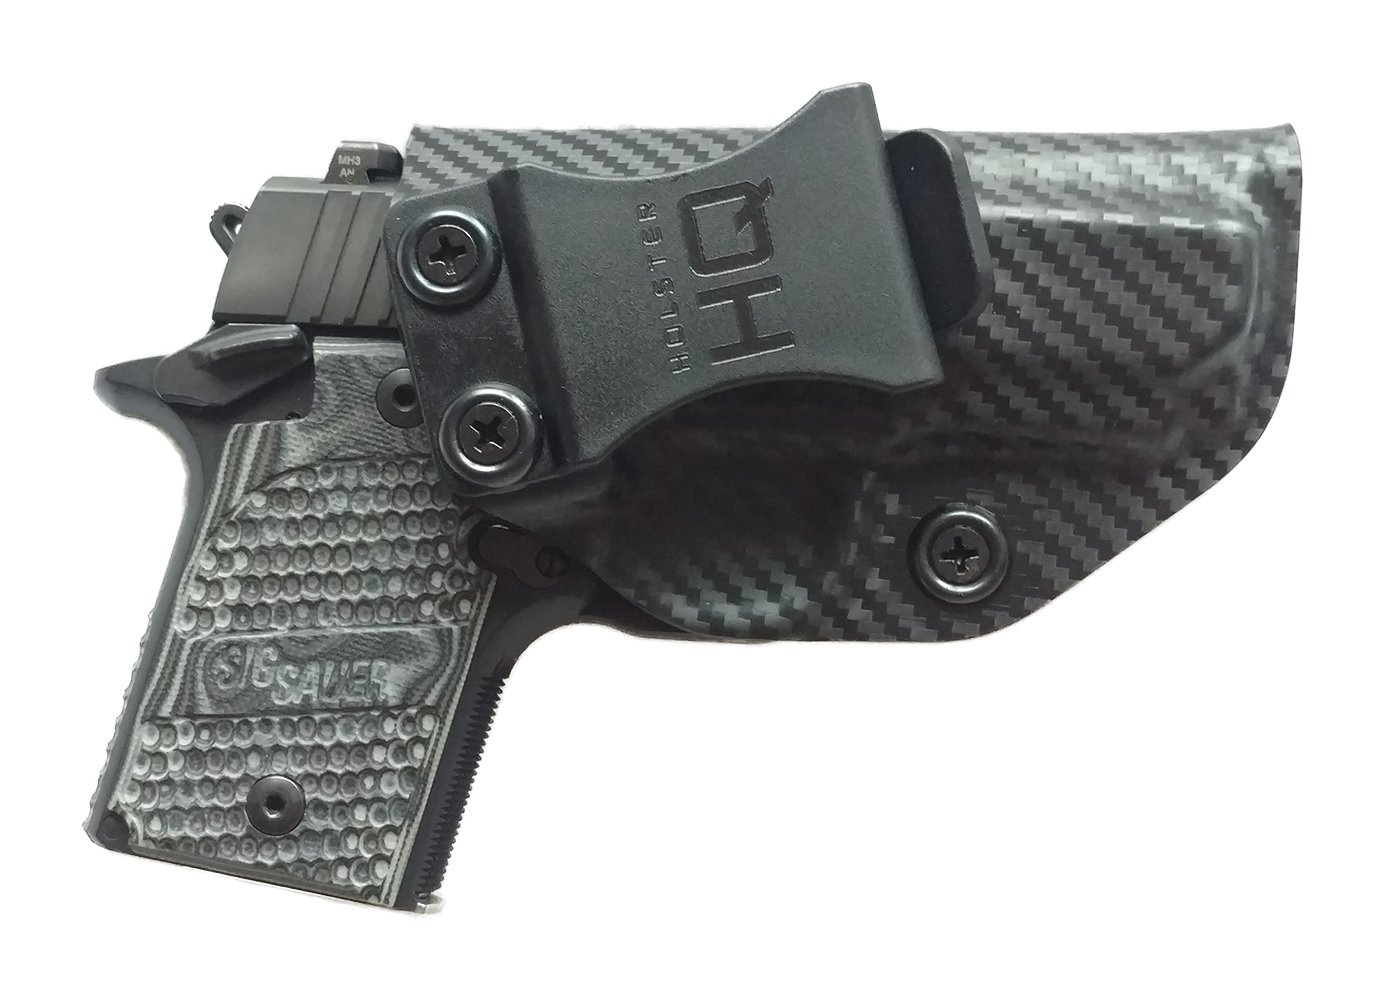 Our Top Pick for 2018: IWB Holsters, The Best Inside Waist Band Holster, Sig Sauer P938 9